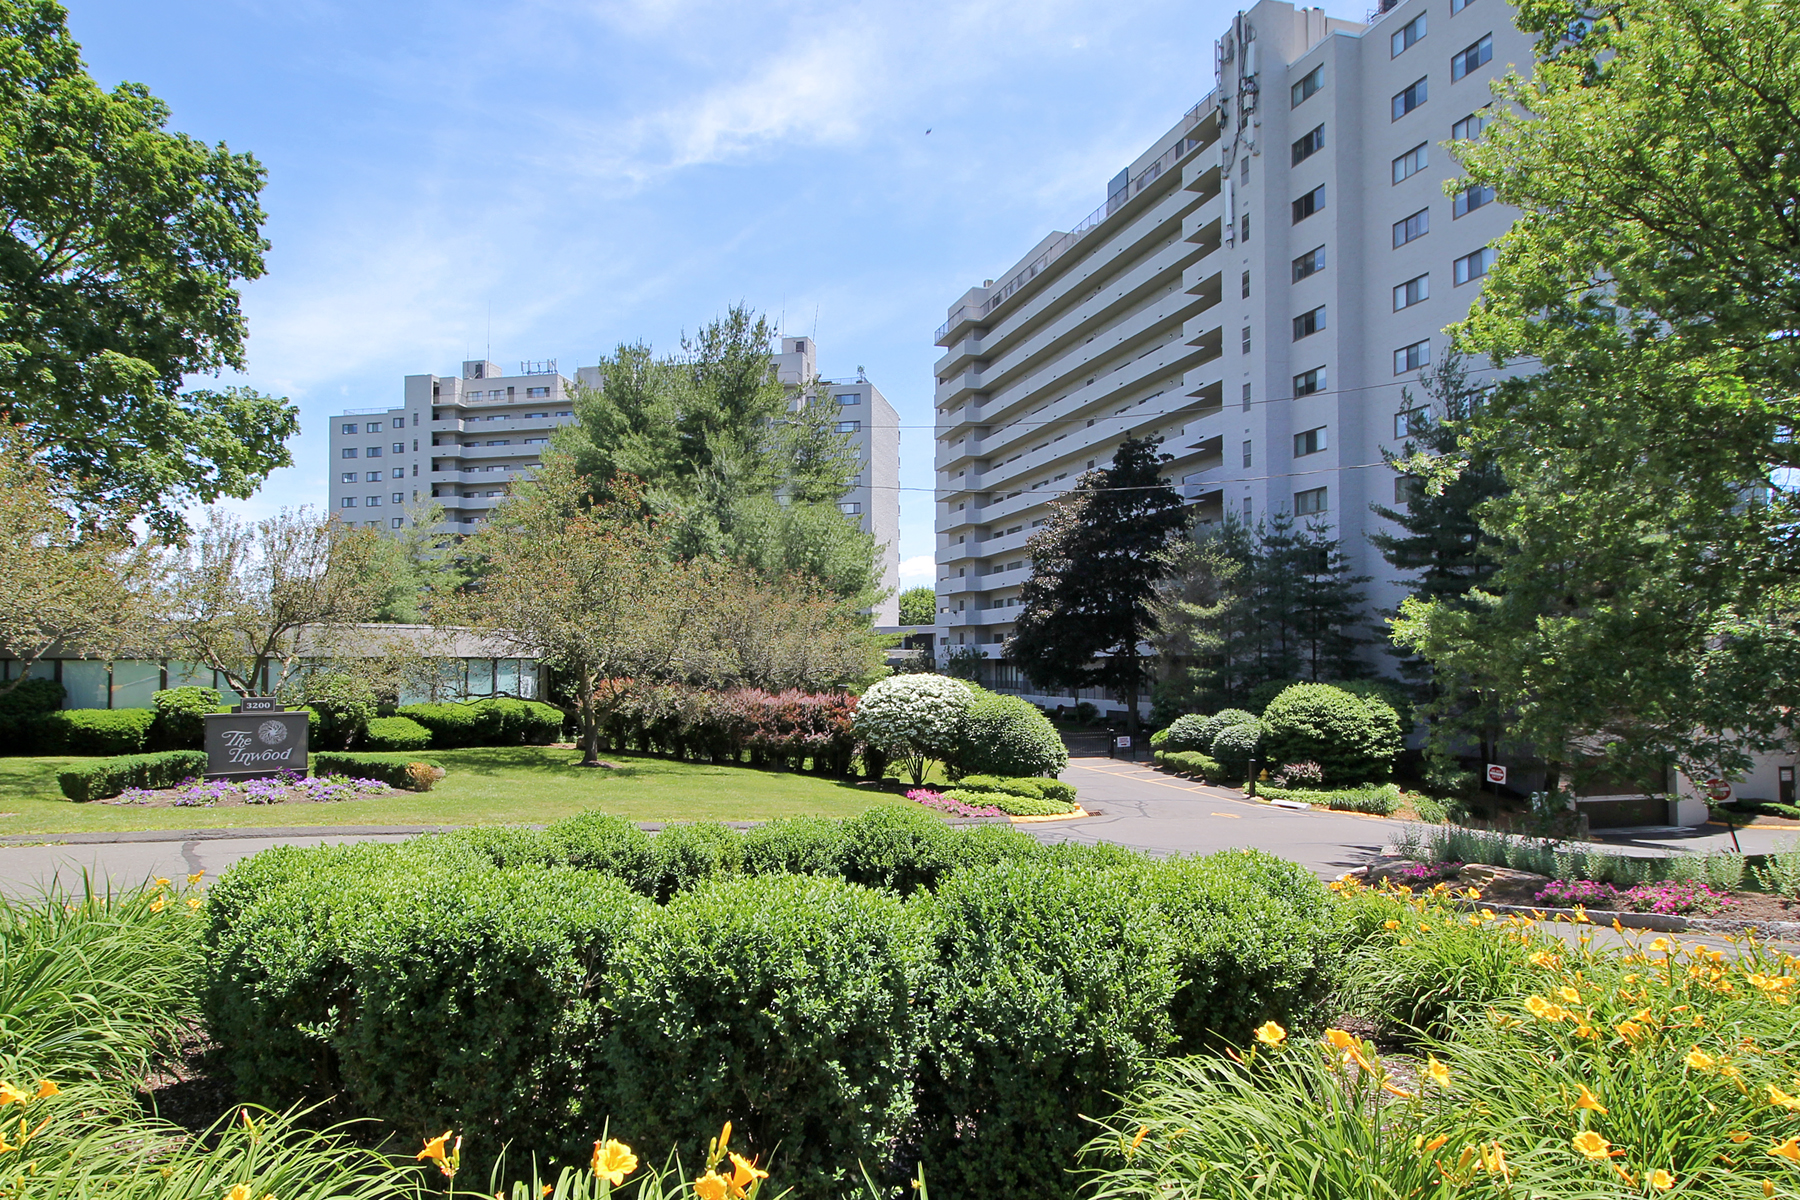 por un Venta en Well Maintained Inwood Condo in Move-in Condition 3200 Park Avenue 8D2 Bridgeport, Connecticut, 06604 Estados Unidos